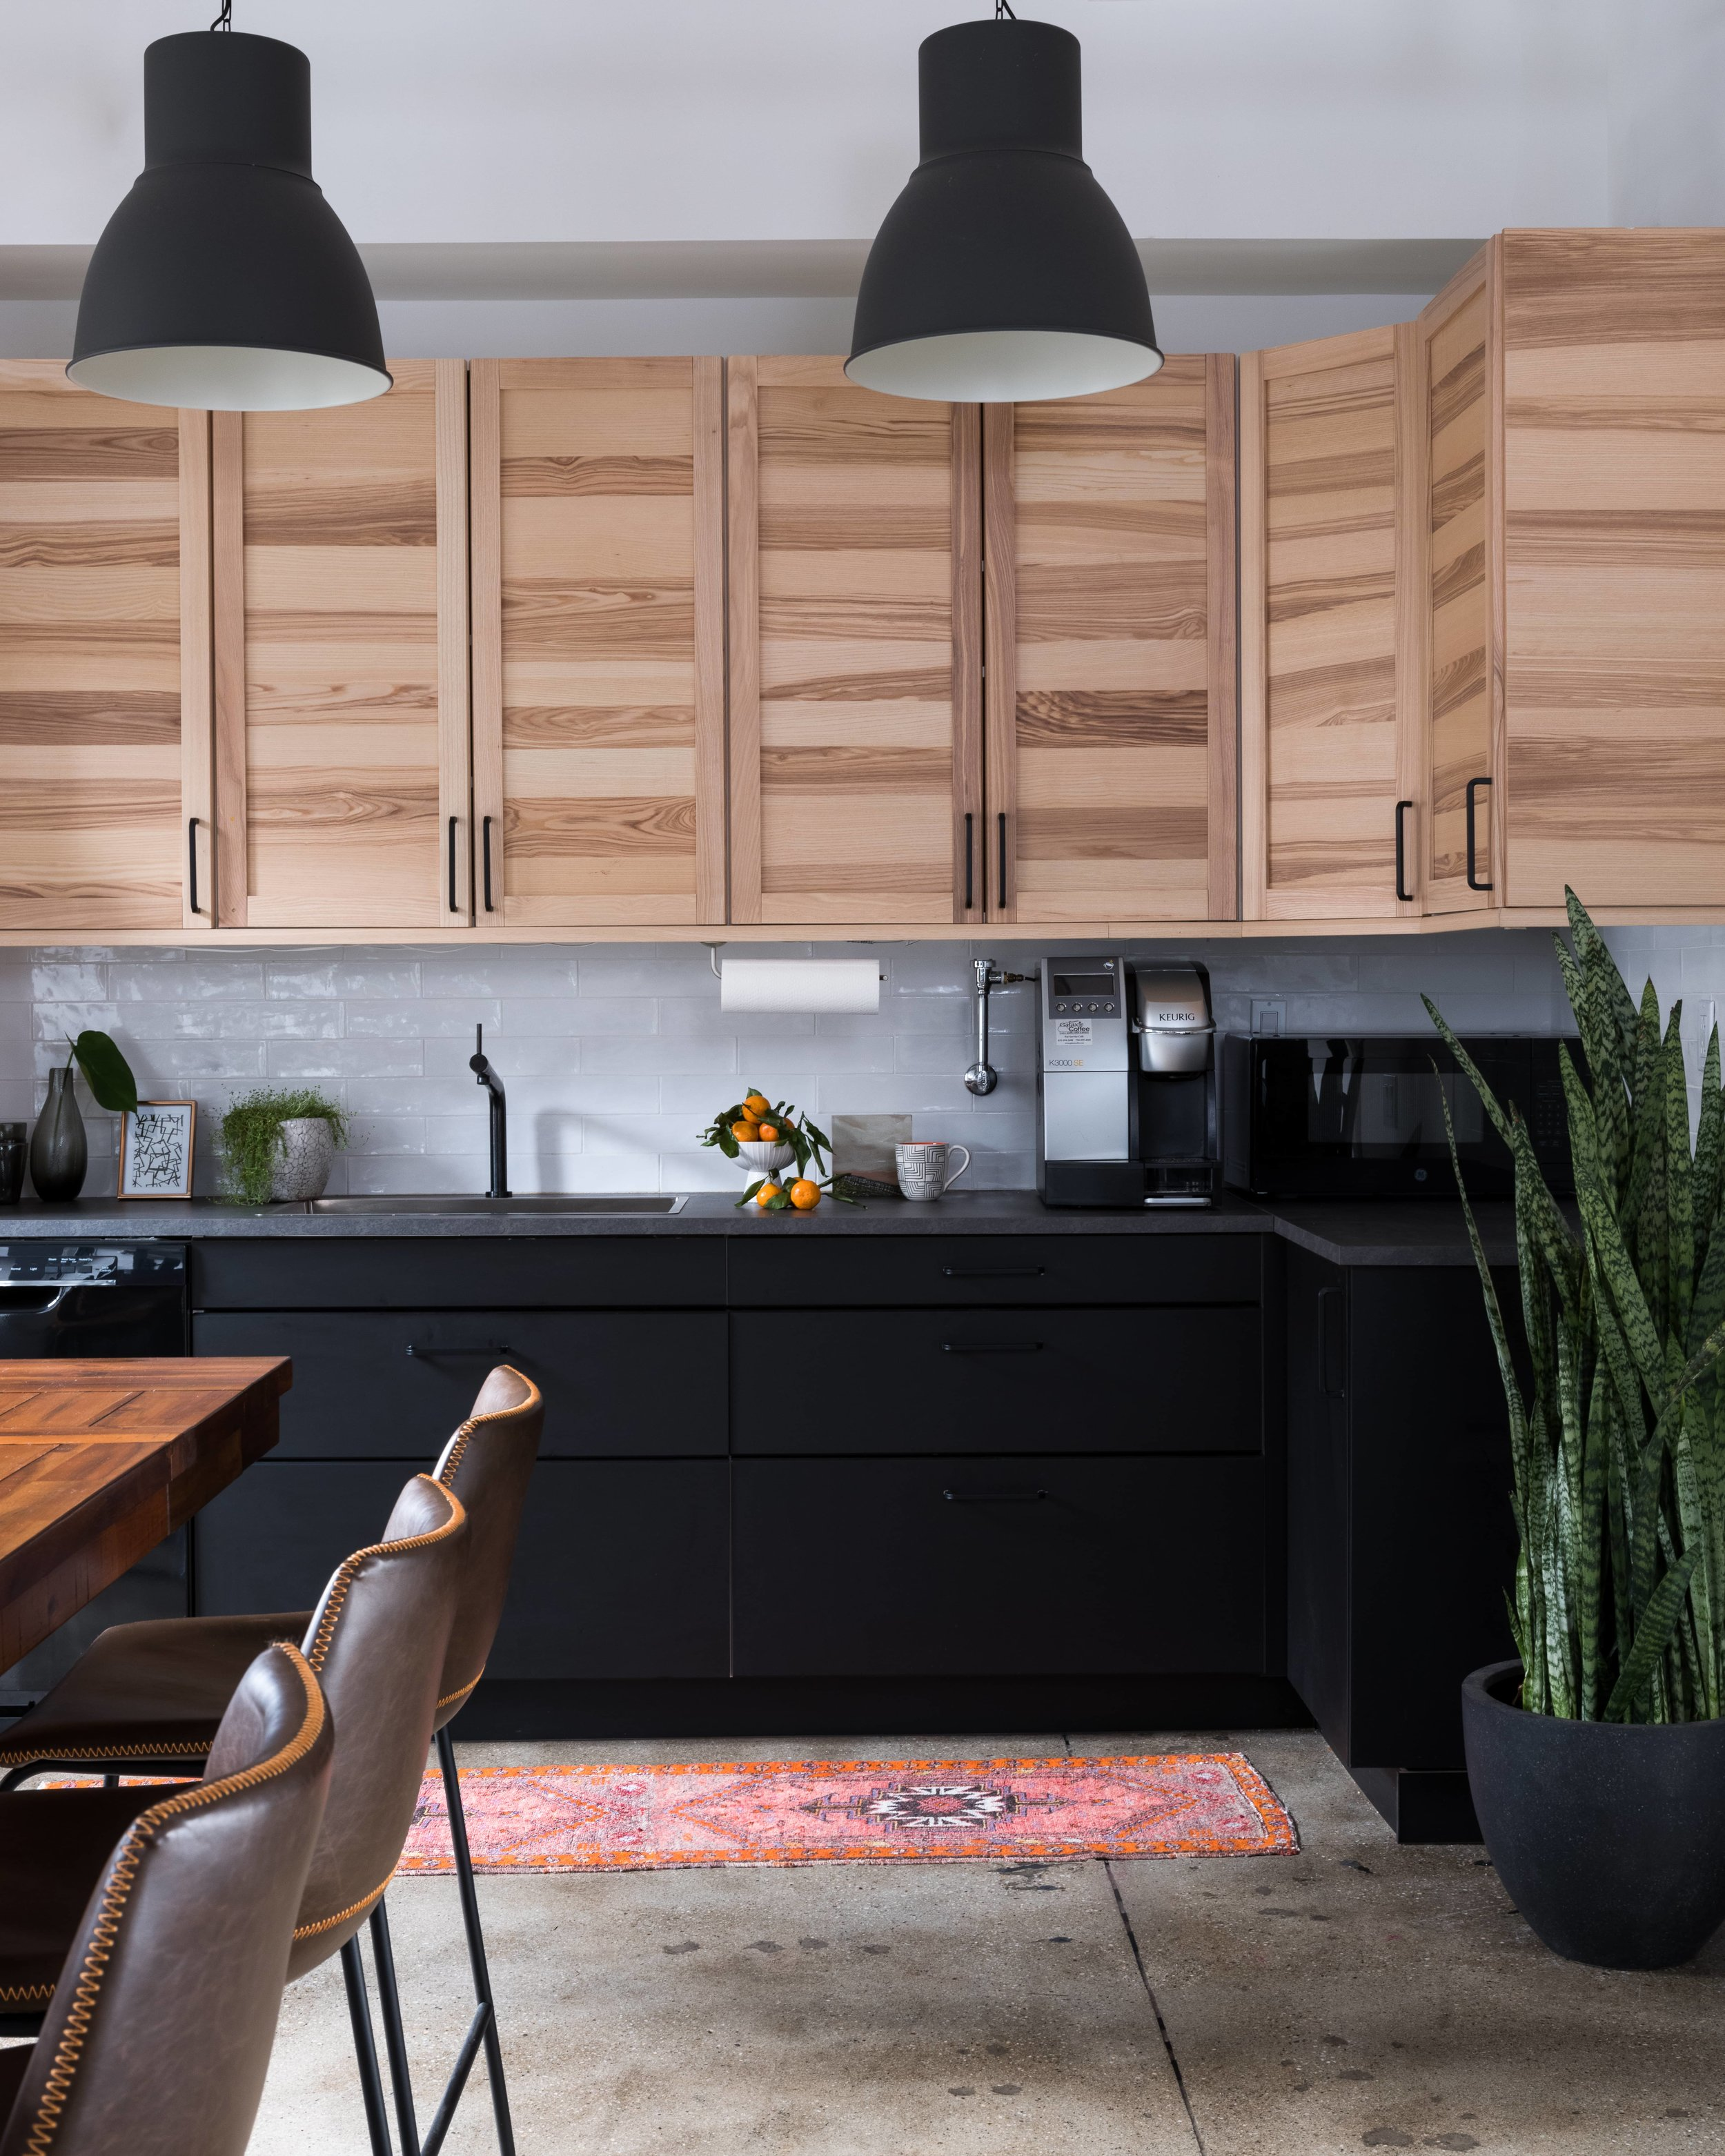 industrial office interior design with ikea kitchen by Lorla Studio NYC